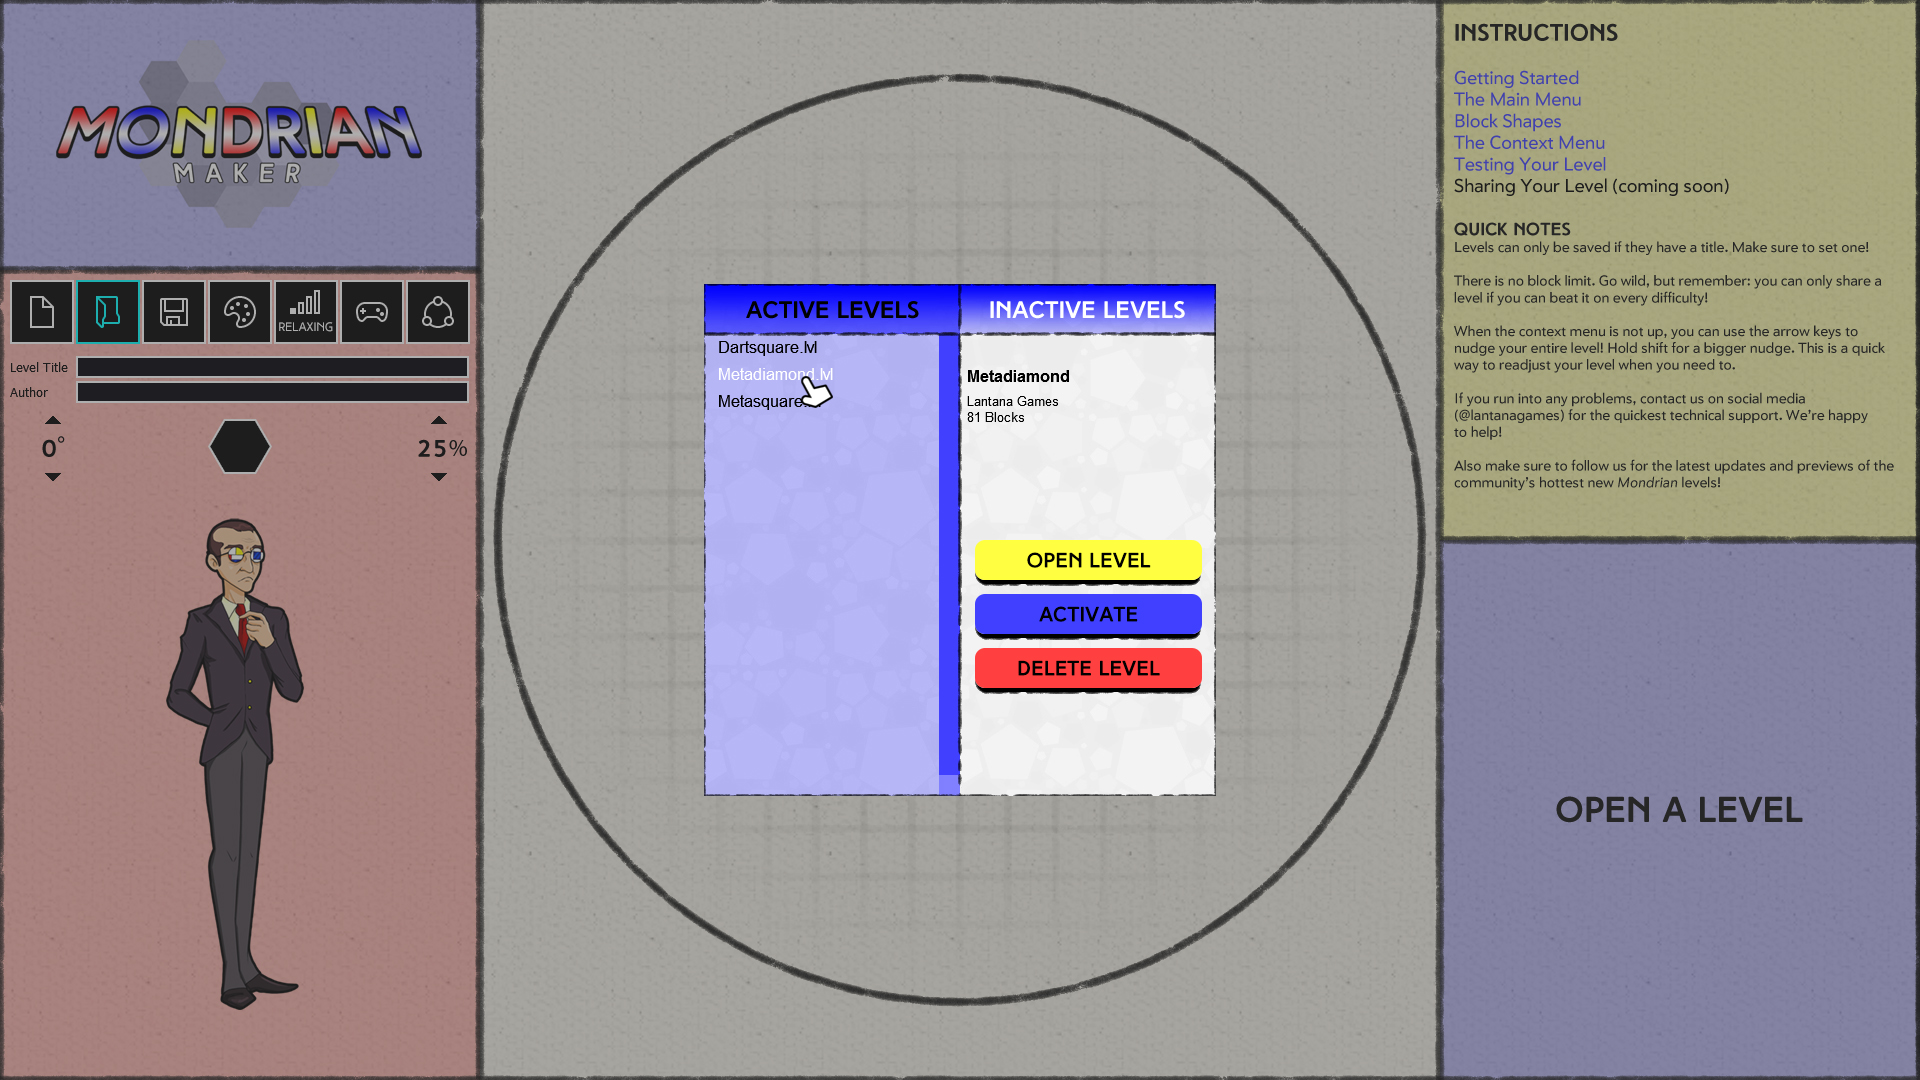 File Management In Mondrian Maker Plastic Reality By Block Diagram Games Game Mode Inactive Levels However Are Only Accessible Inside When You Click The Active Or Tabs View Will